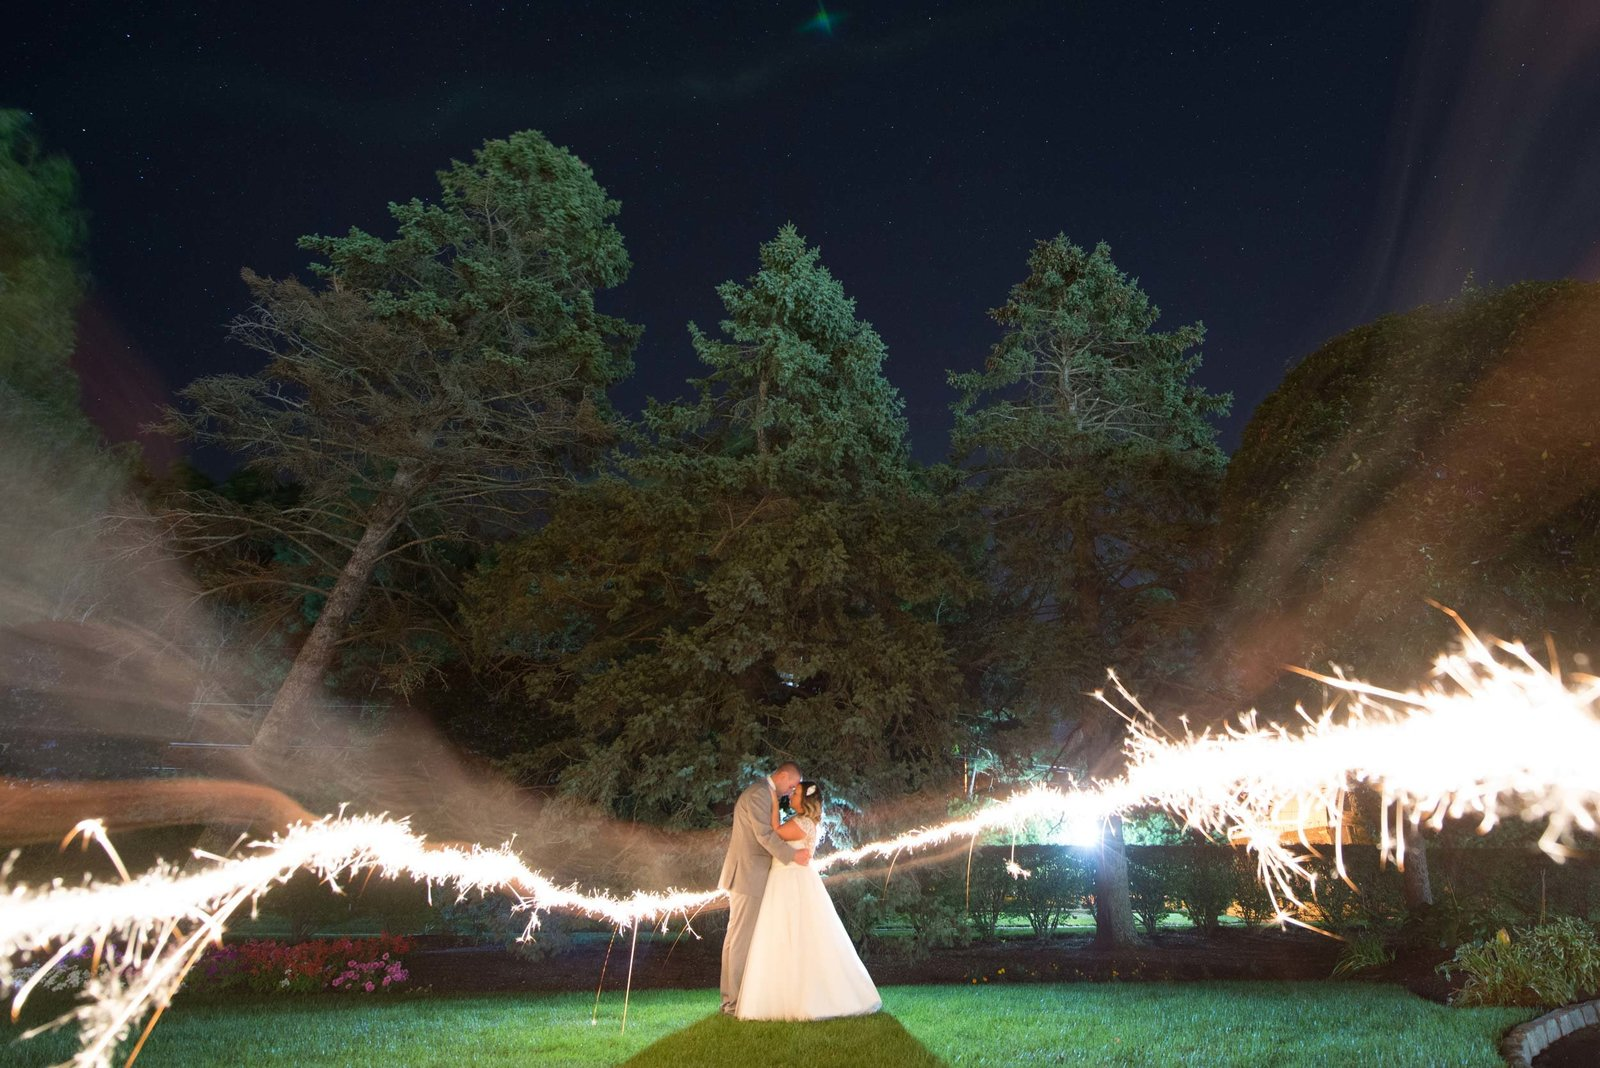 Sparkler night photo at East Wind